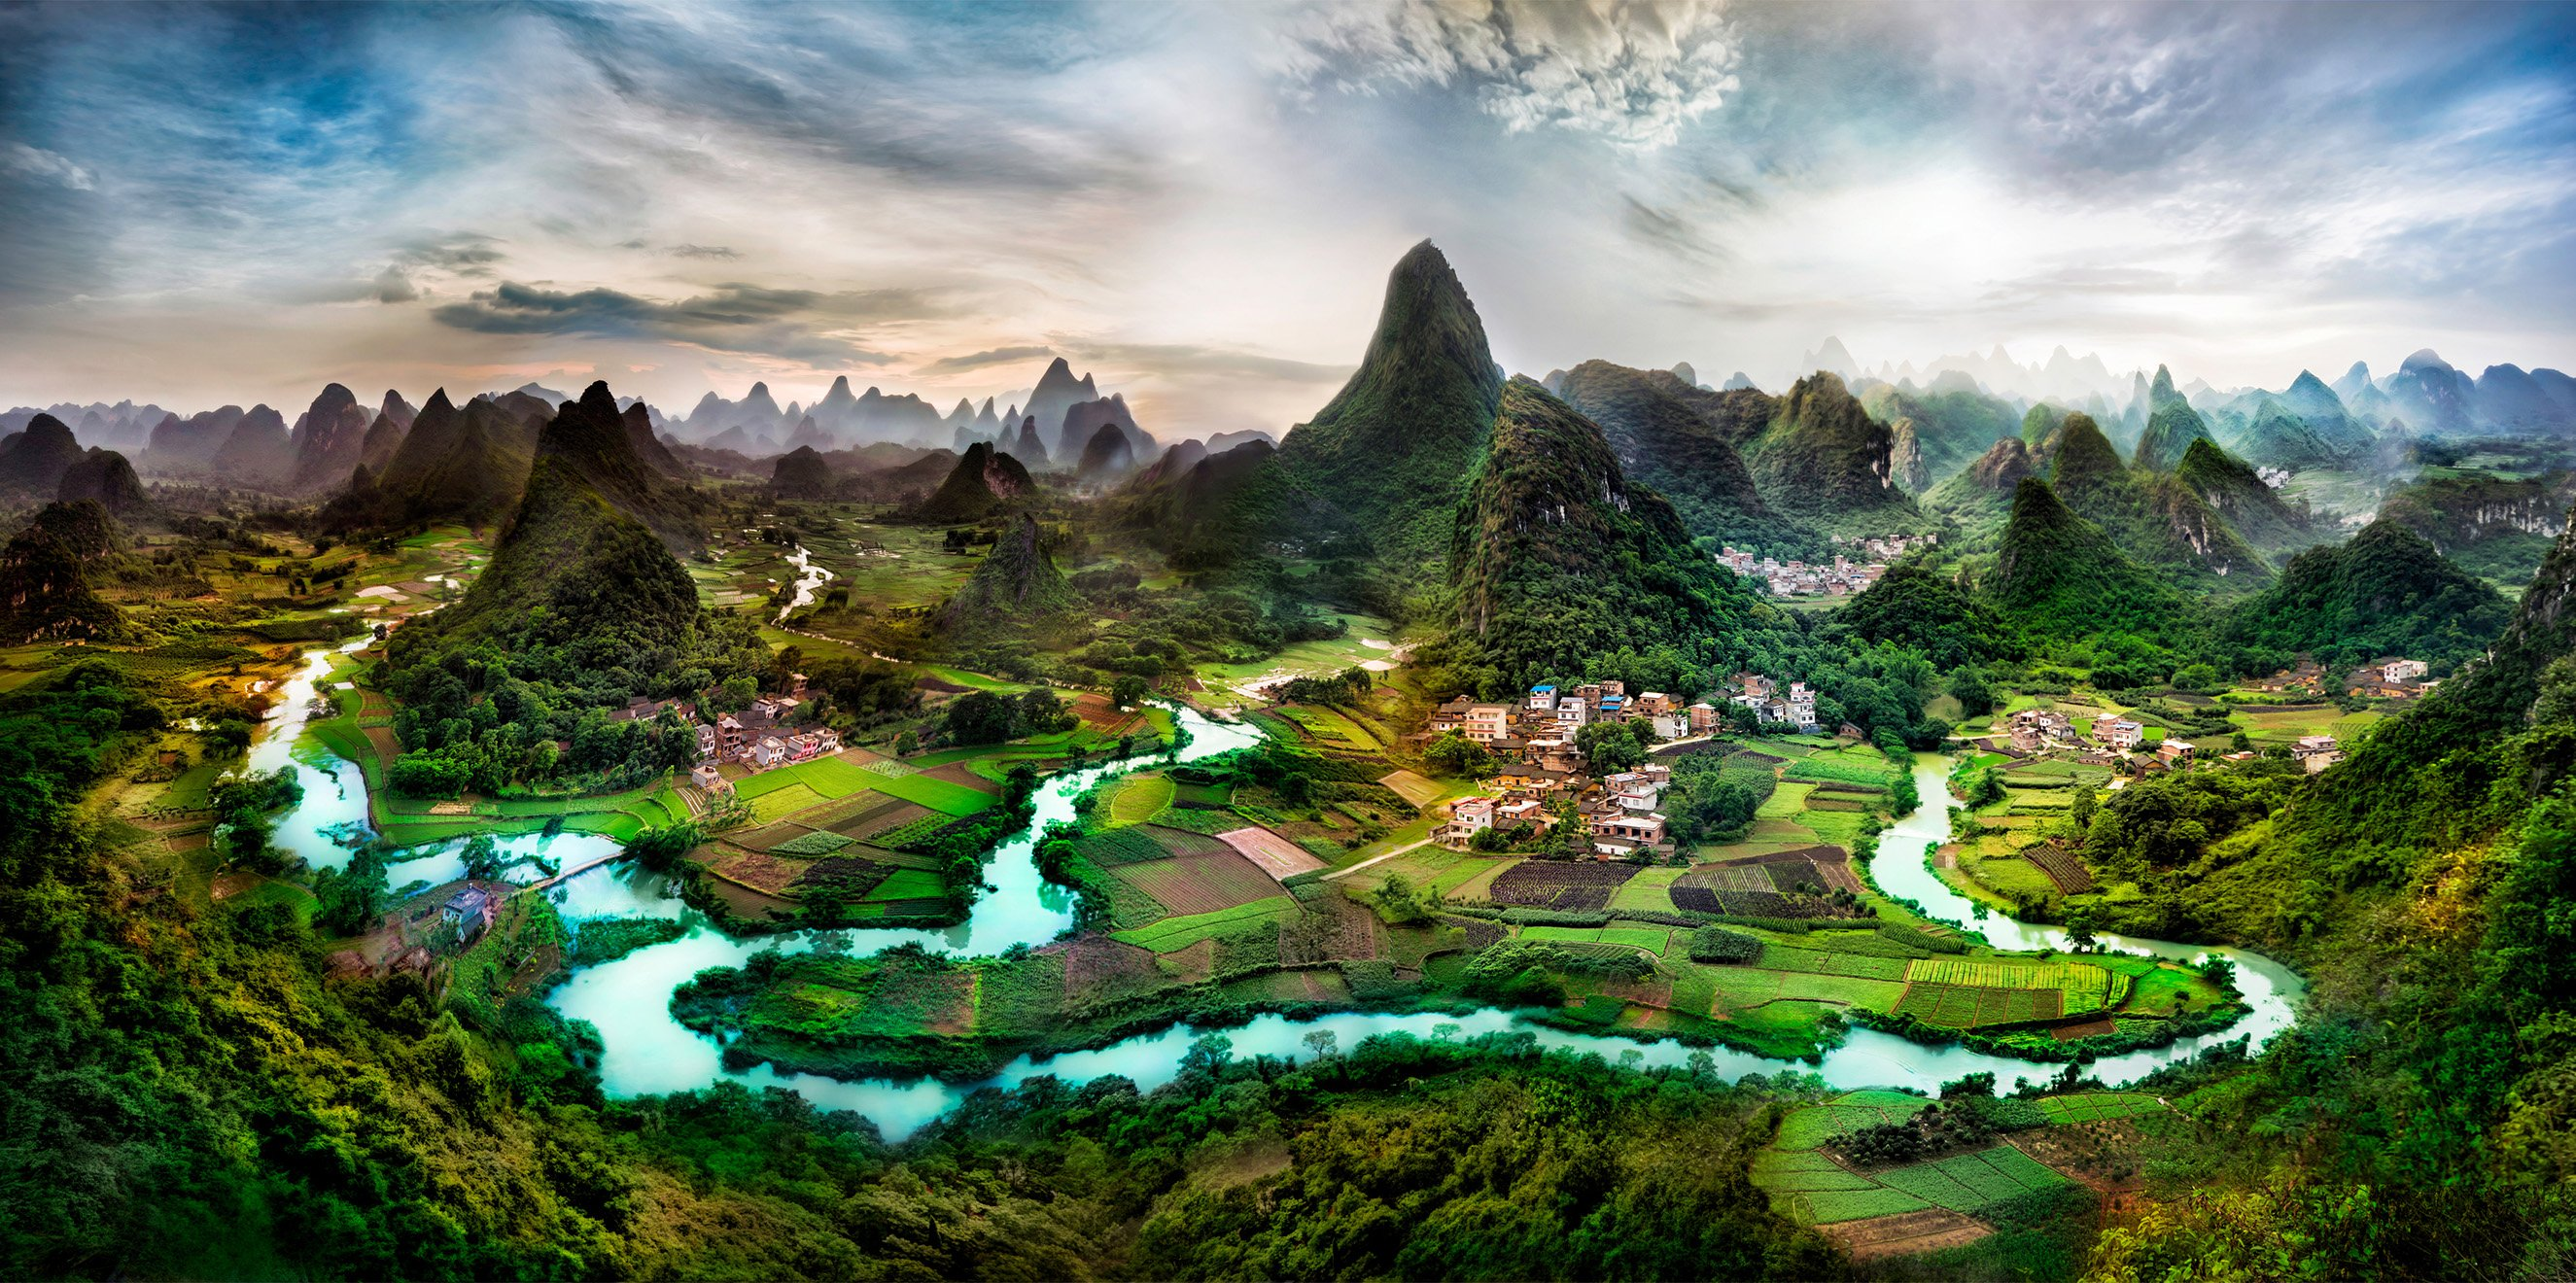 The Green Hills of Li River Guangxi China wallpaper